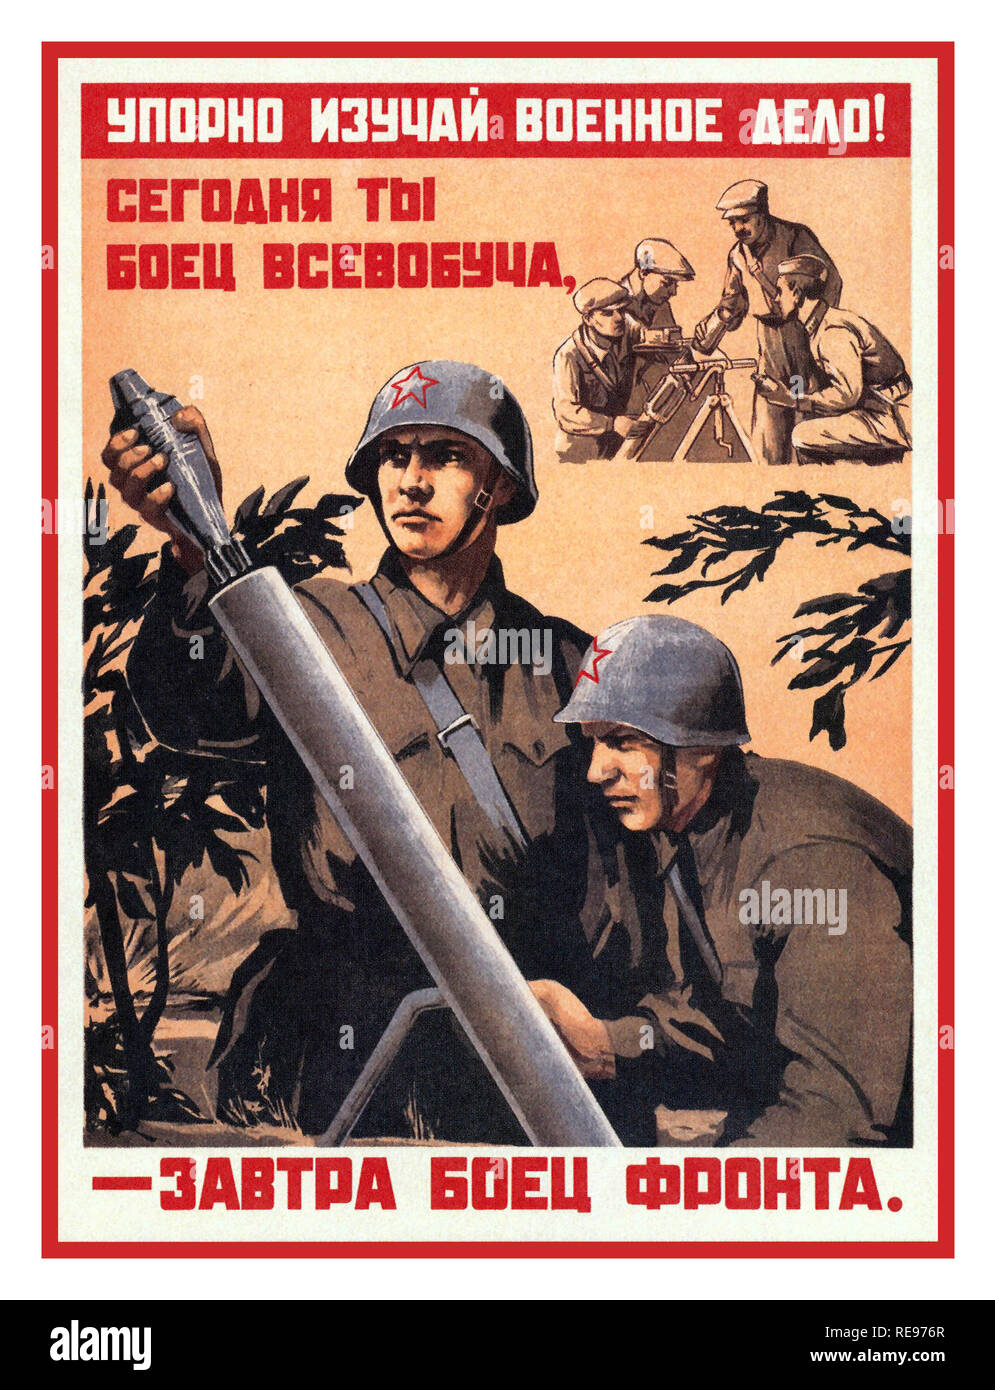 WW2 Russian Propaganda Poster 'Persistently study the military!'  'Today You are a universal military fighter - tomorrow a fighter at the Front' 1942 Soviet Russia Recruitment Propaganda Poster - Stock Image